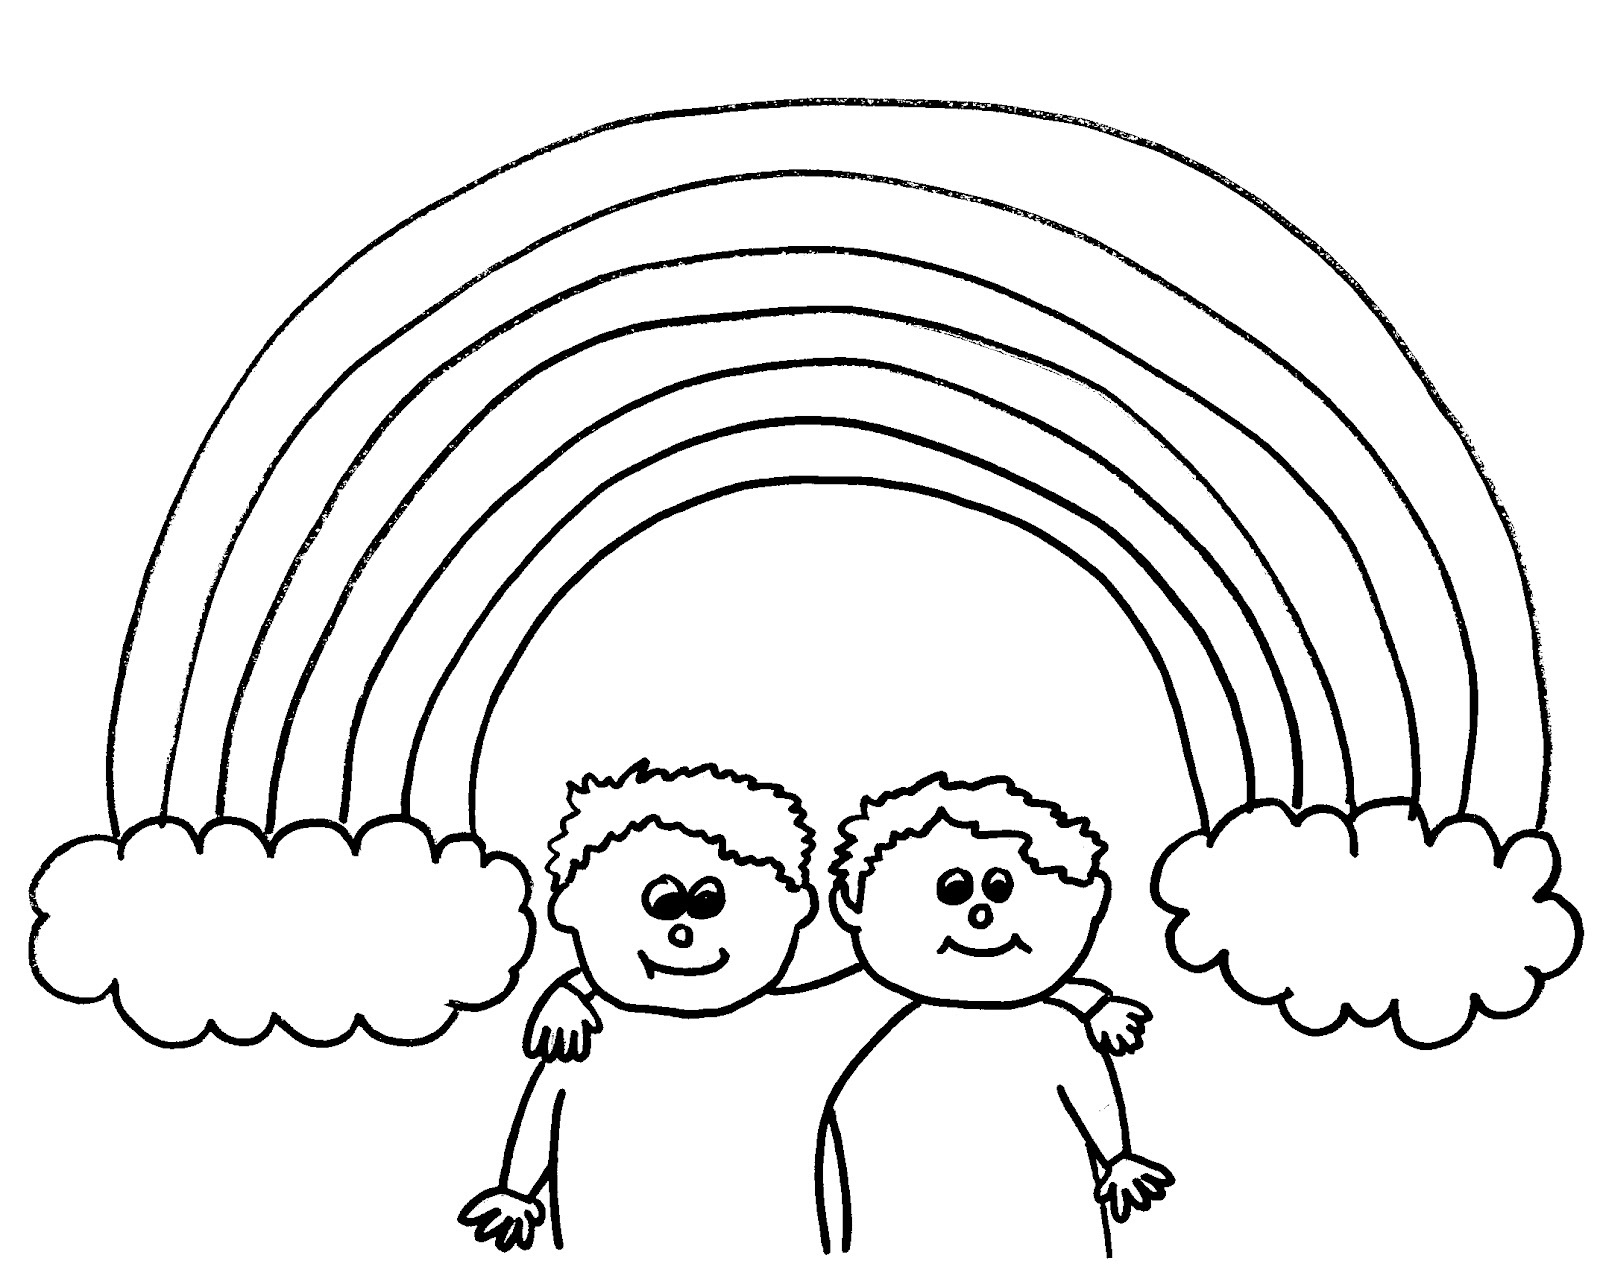 coloring pictures of rainbows rainbows coloring pages rainbows pictures of coloring